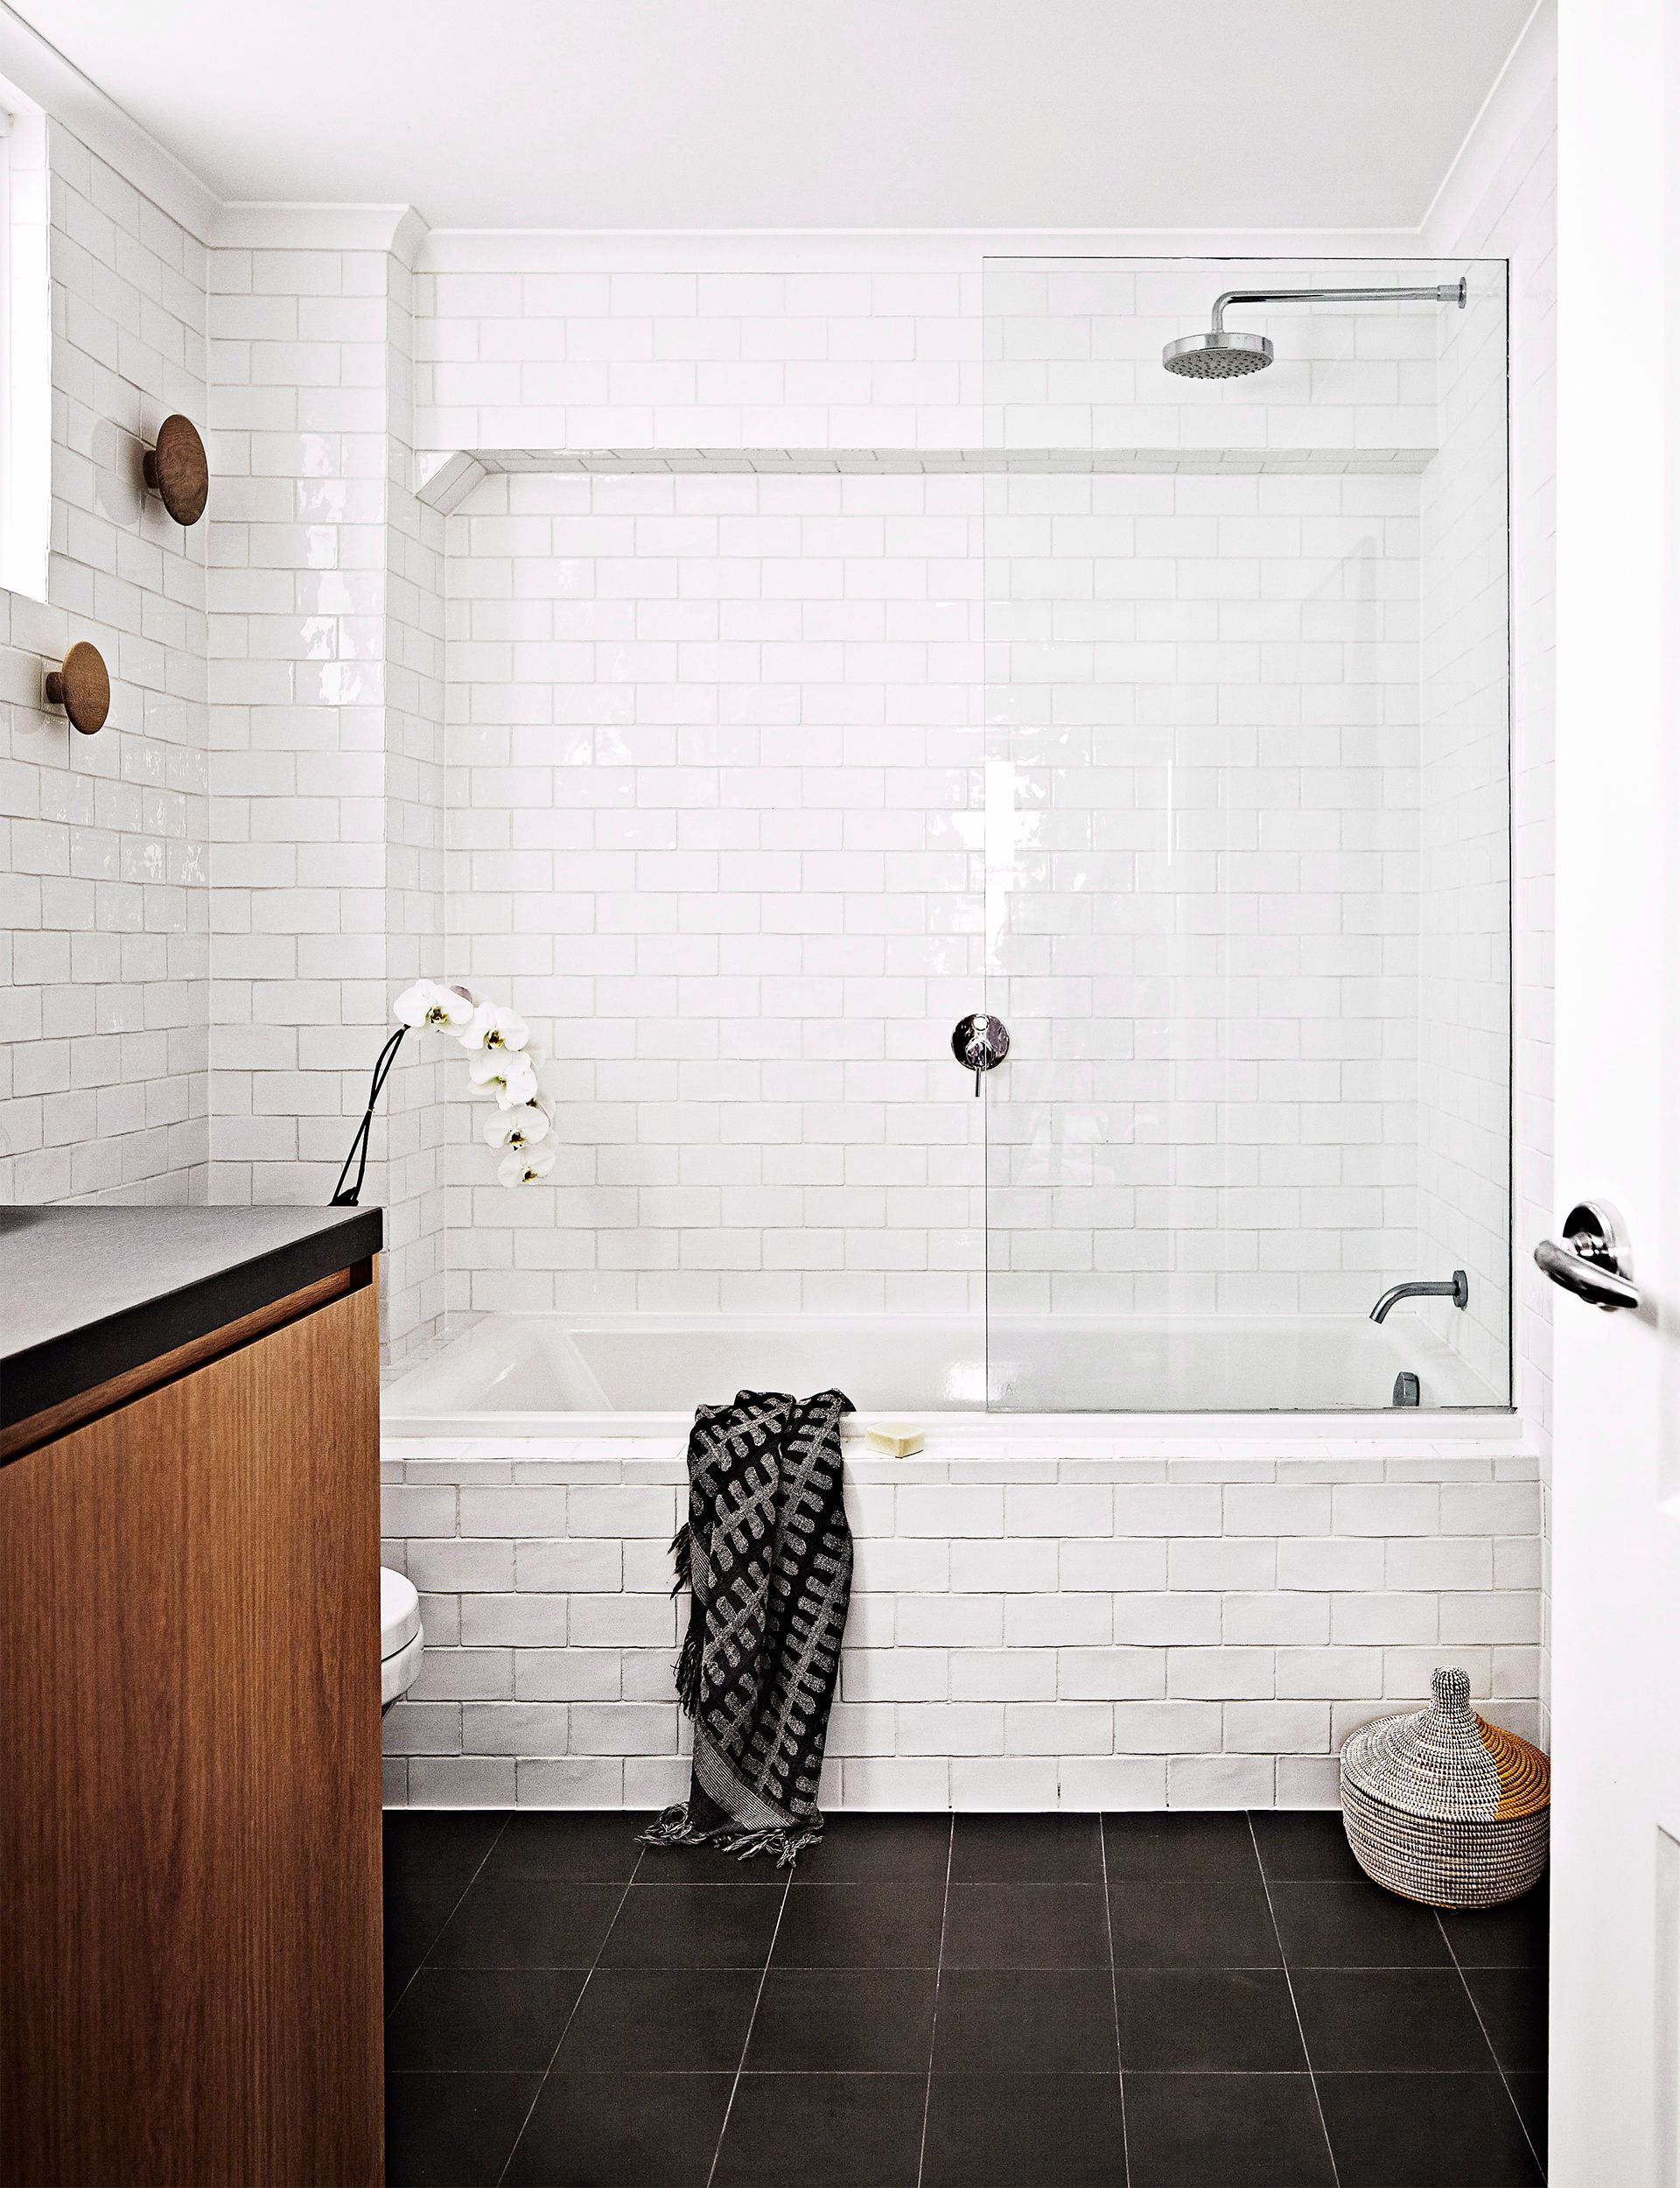 4 ways to trick your small bathroom into feeling bigger | Small ...